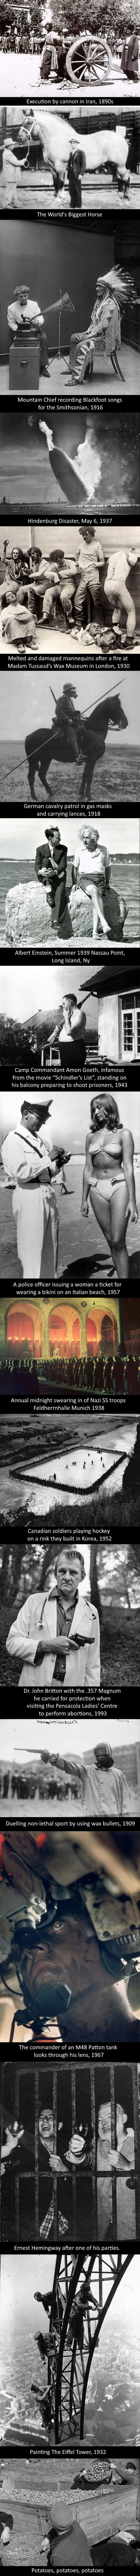 Old snaps you have to see. Part 6 - 9GAG